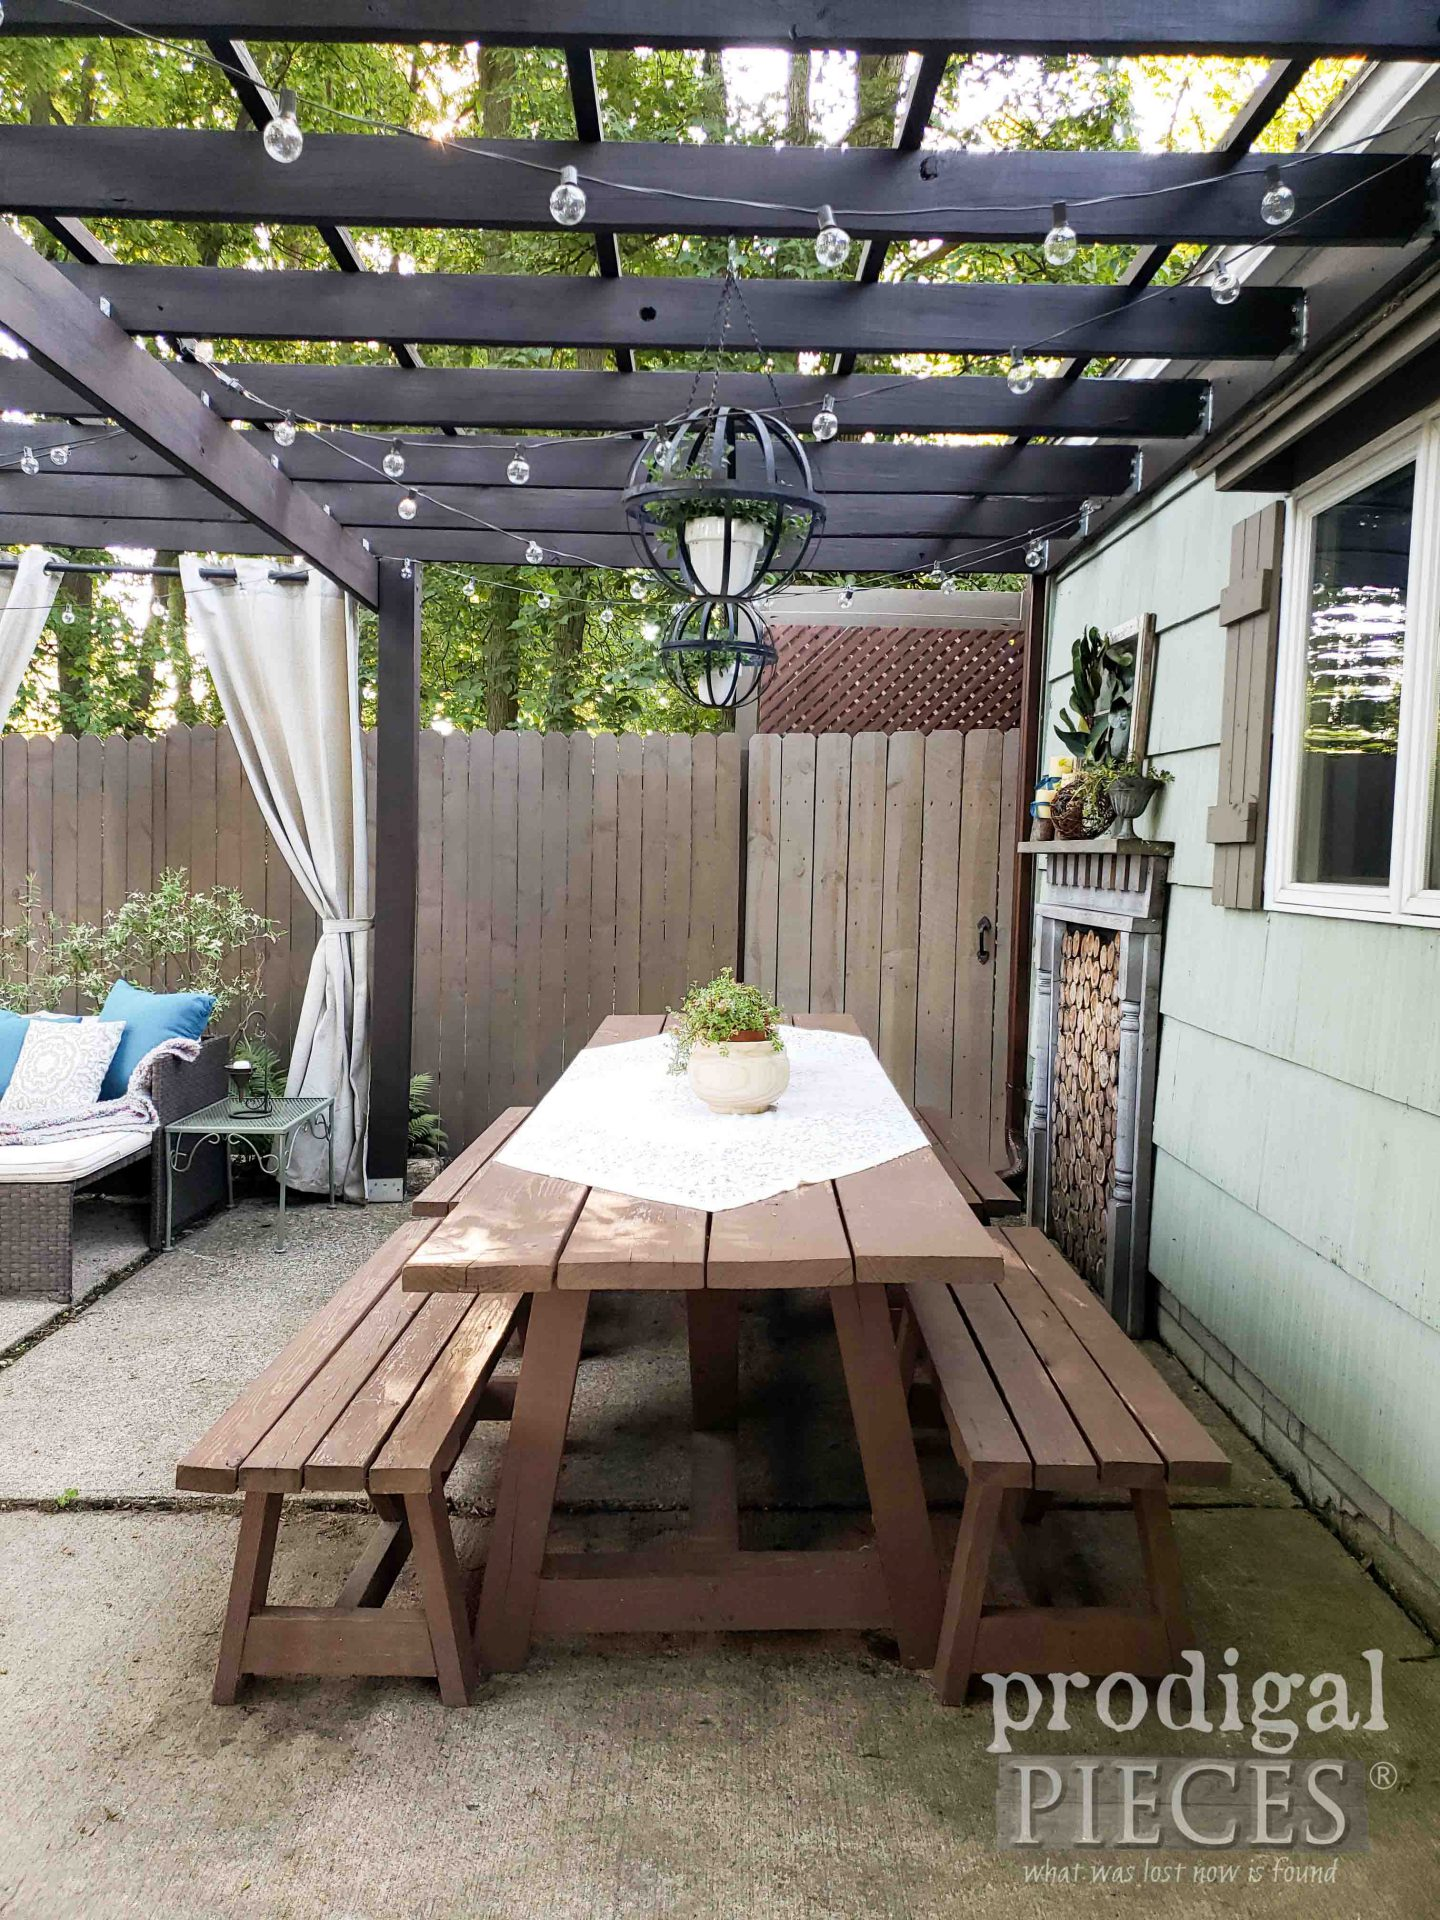 Handmade Patio Decor by Prodigal Pieces | prodigalpieces.com #prodigalpieces